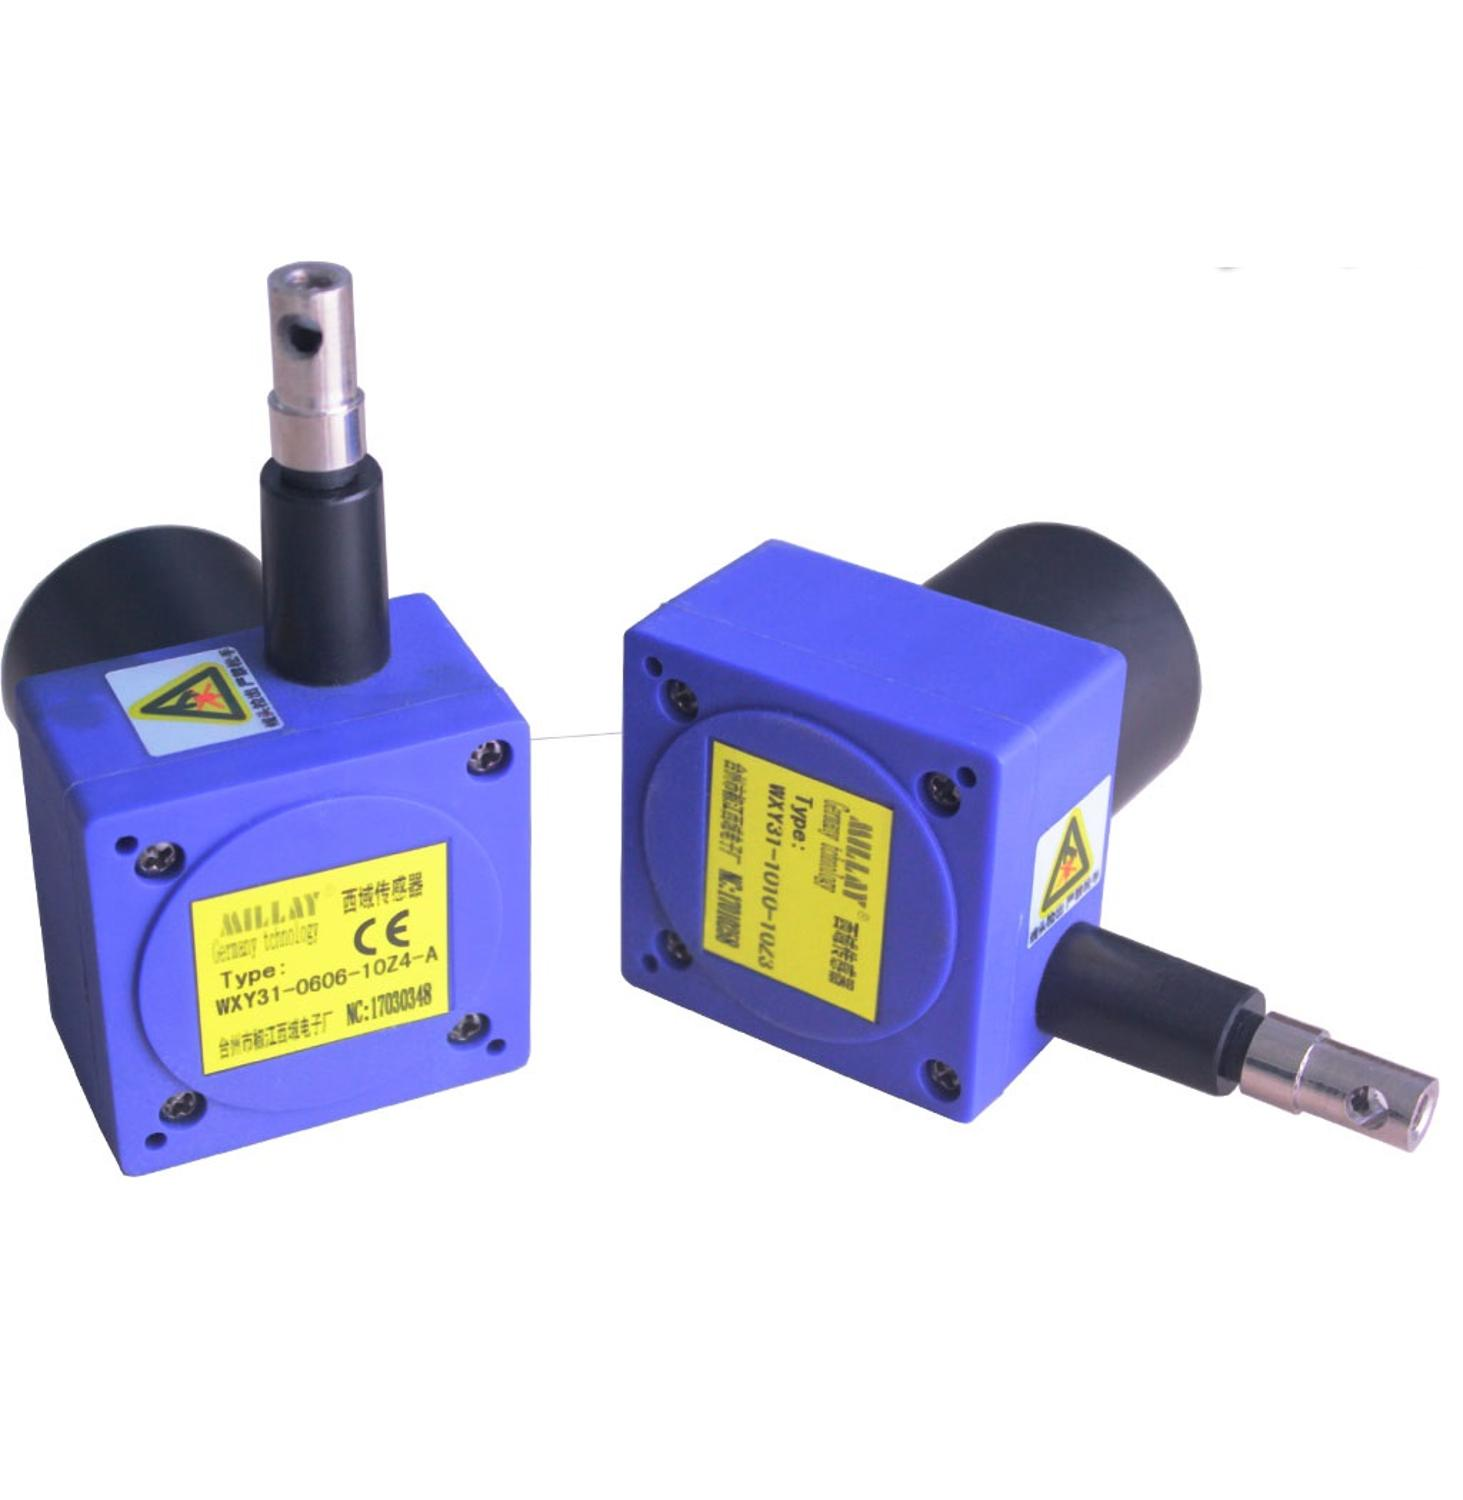 WXY31-1010 WXY80-L Gate Opening Instrument 4-20MA Cable Pull Rope Displacement Sensor RS485 Communication